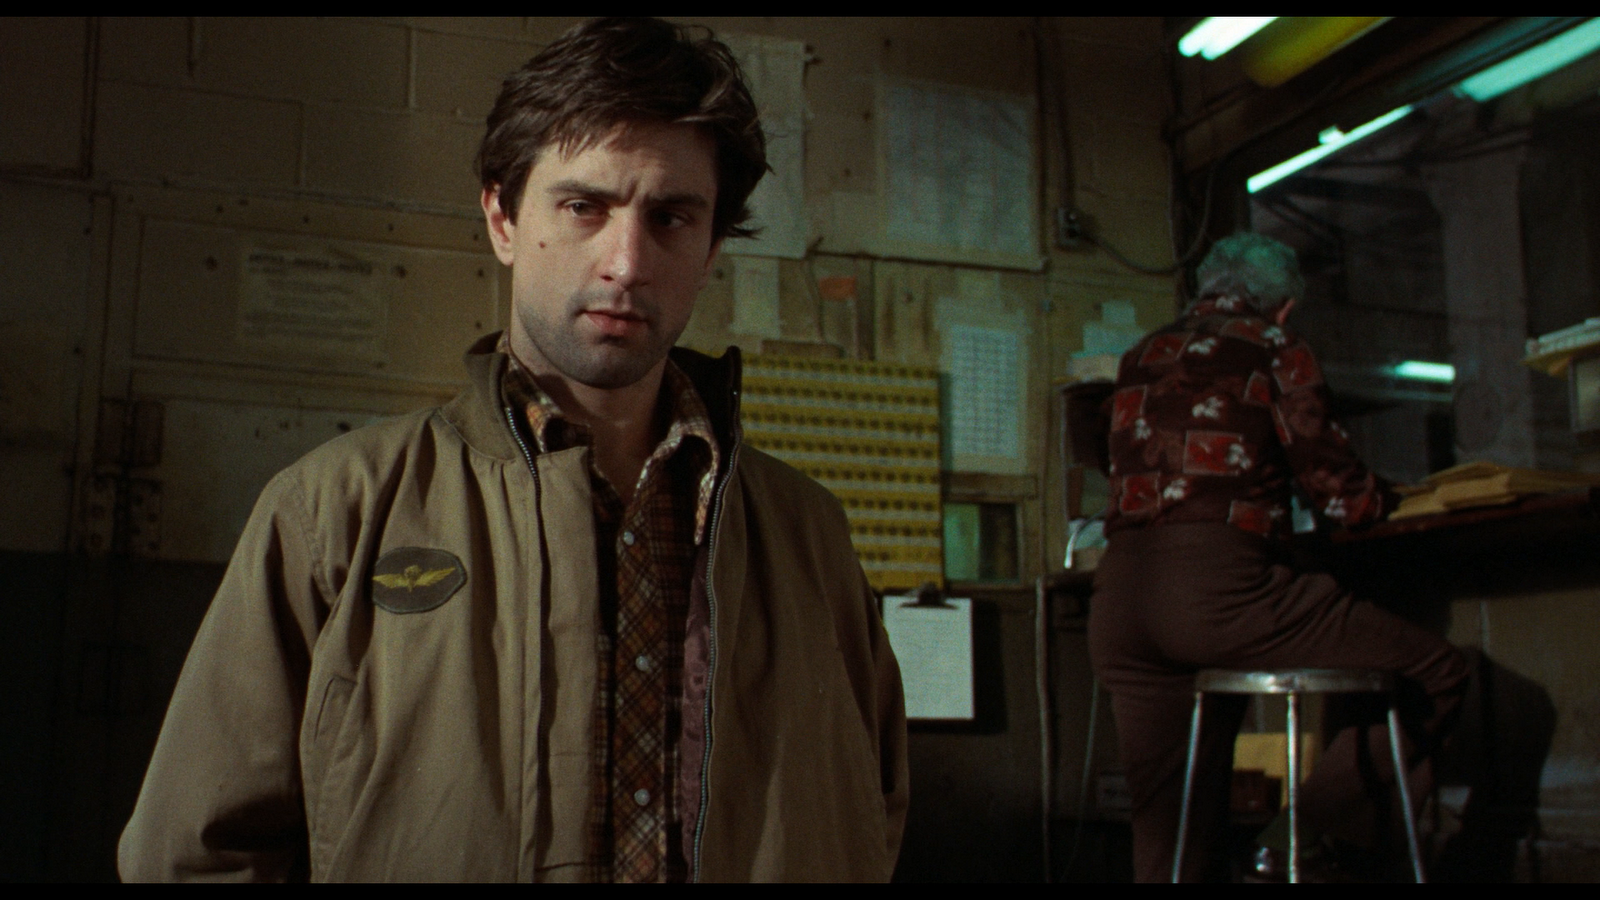 taxi driver analysis ending relationship